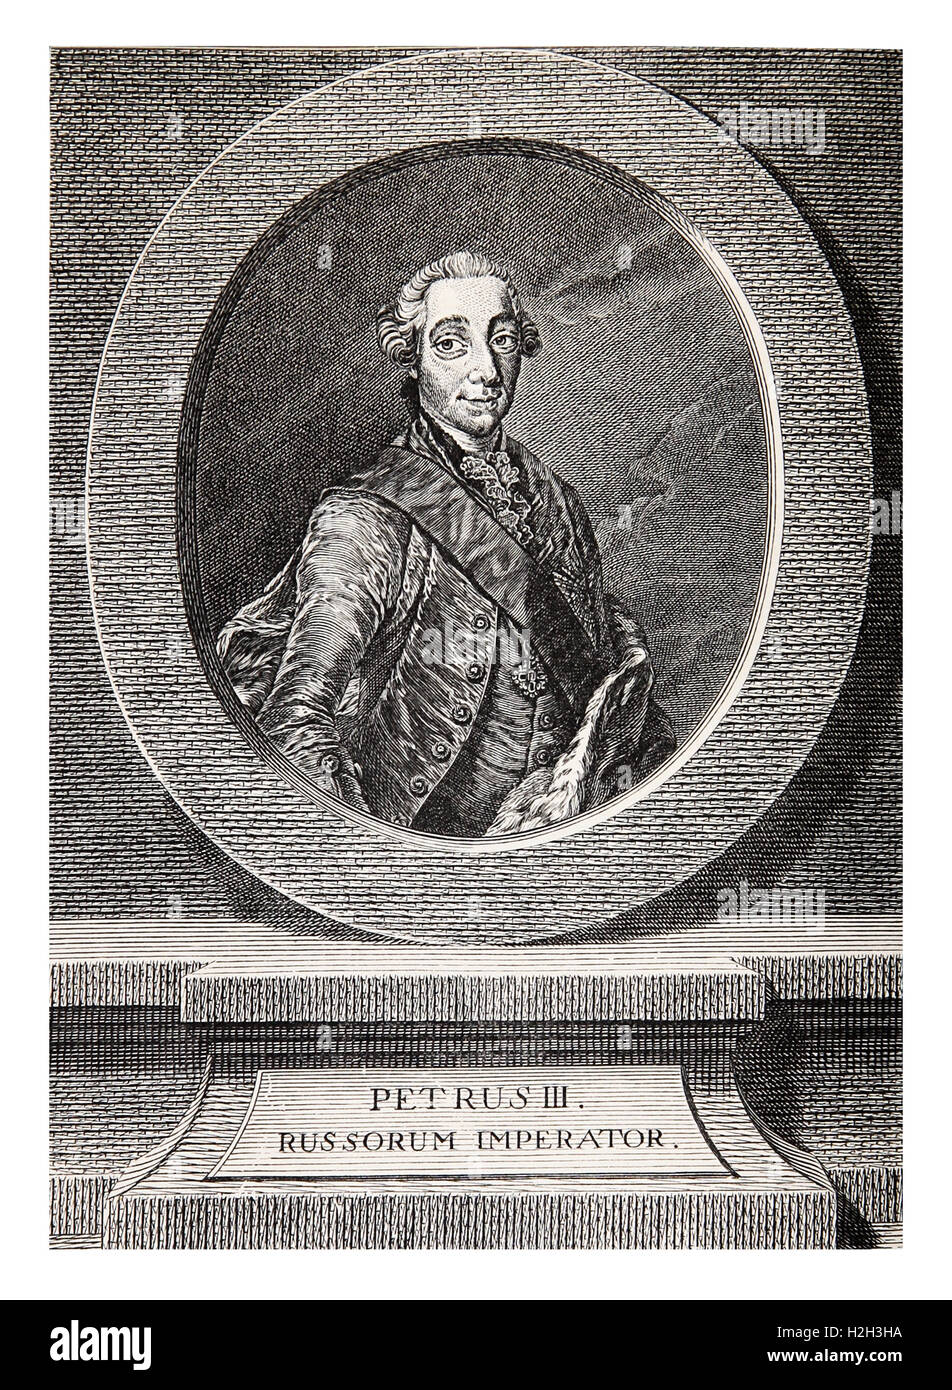 Vintage engraving portrait of Peter III Emperor of Russia for six months in 1762 - Stock Image